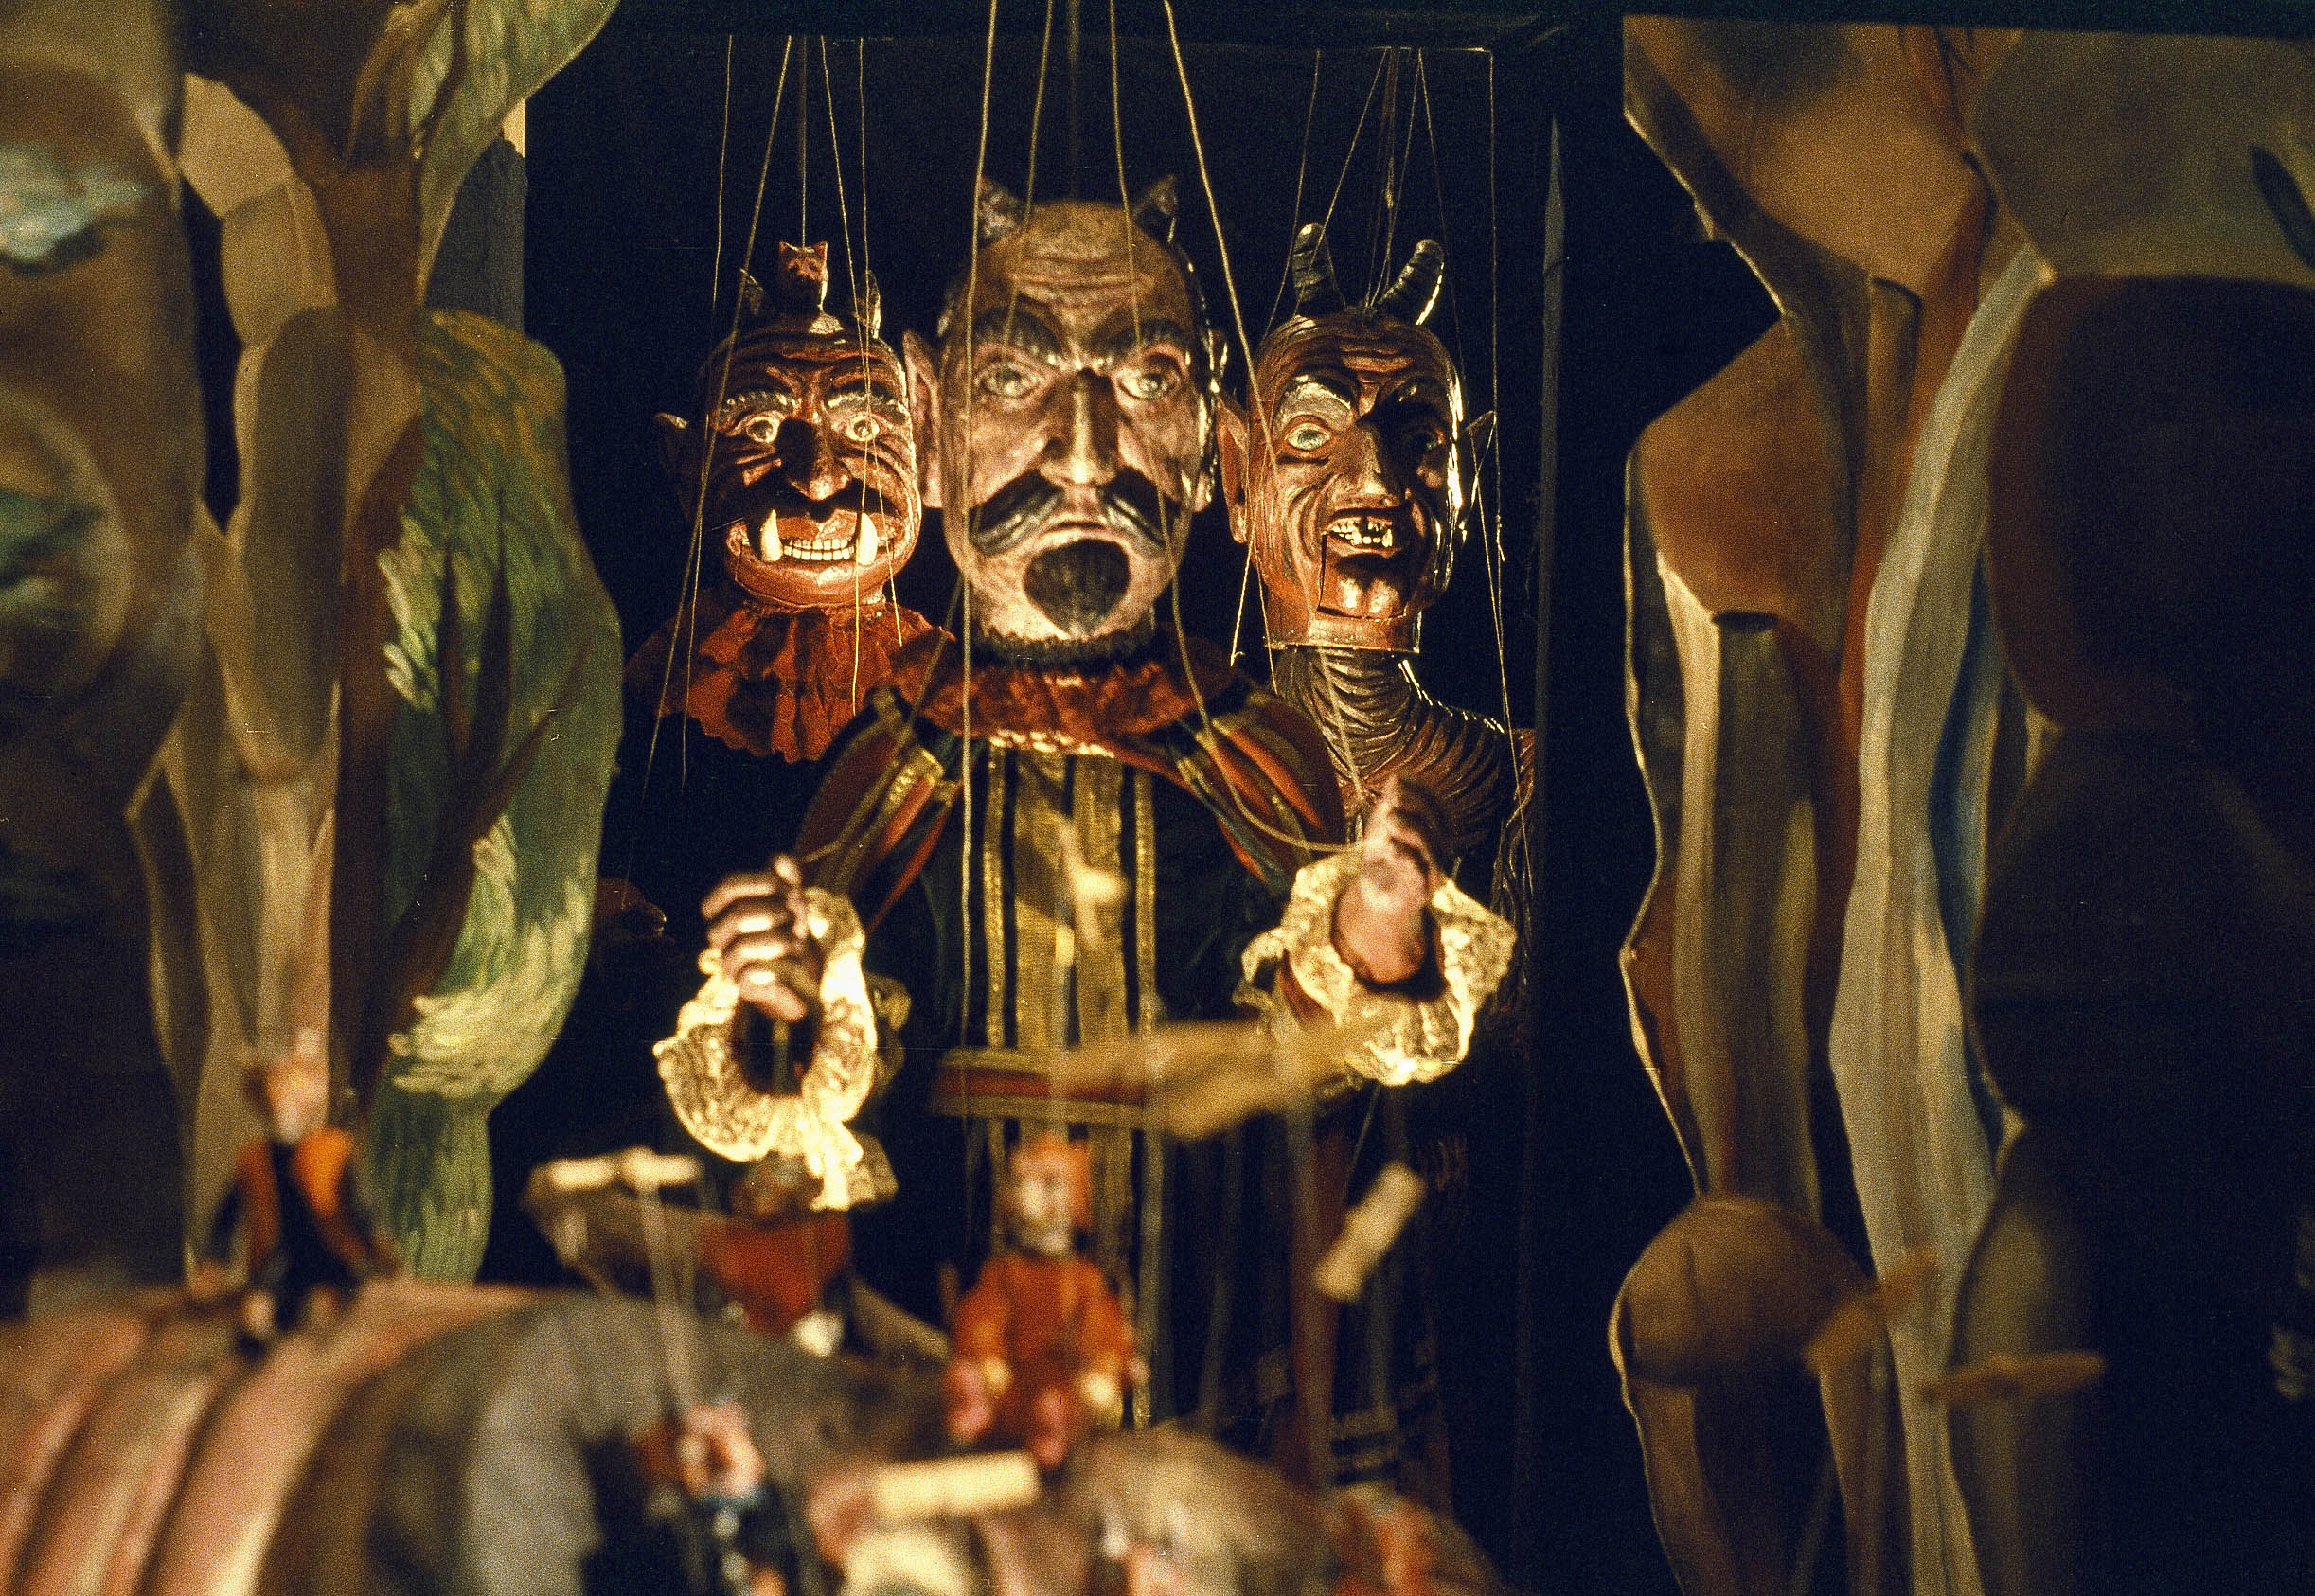 Jan Svankmajer's bizarre mix of puppetry and Claymation in Faust (1994)